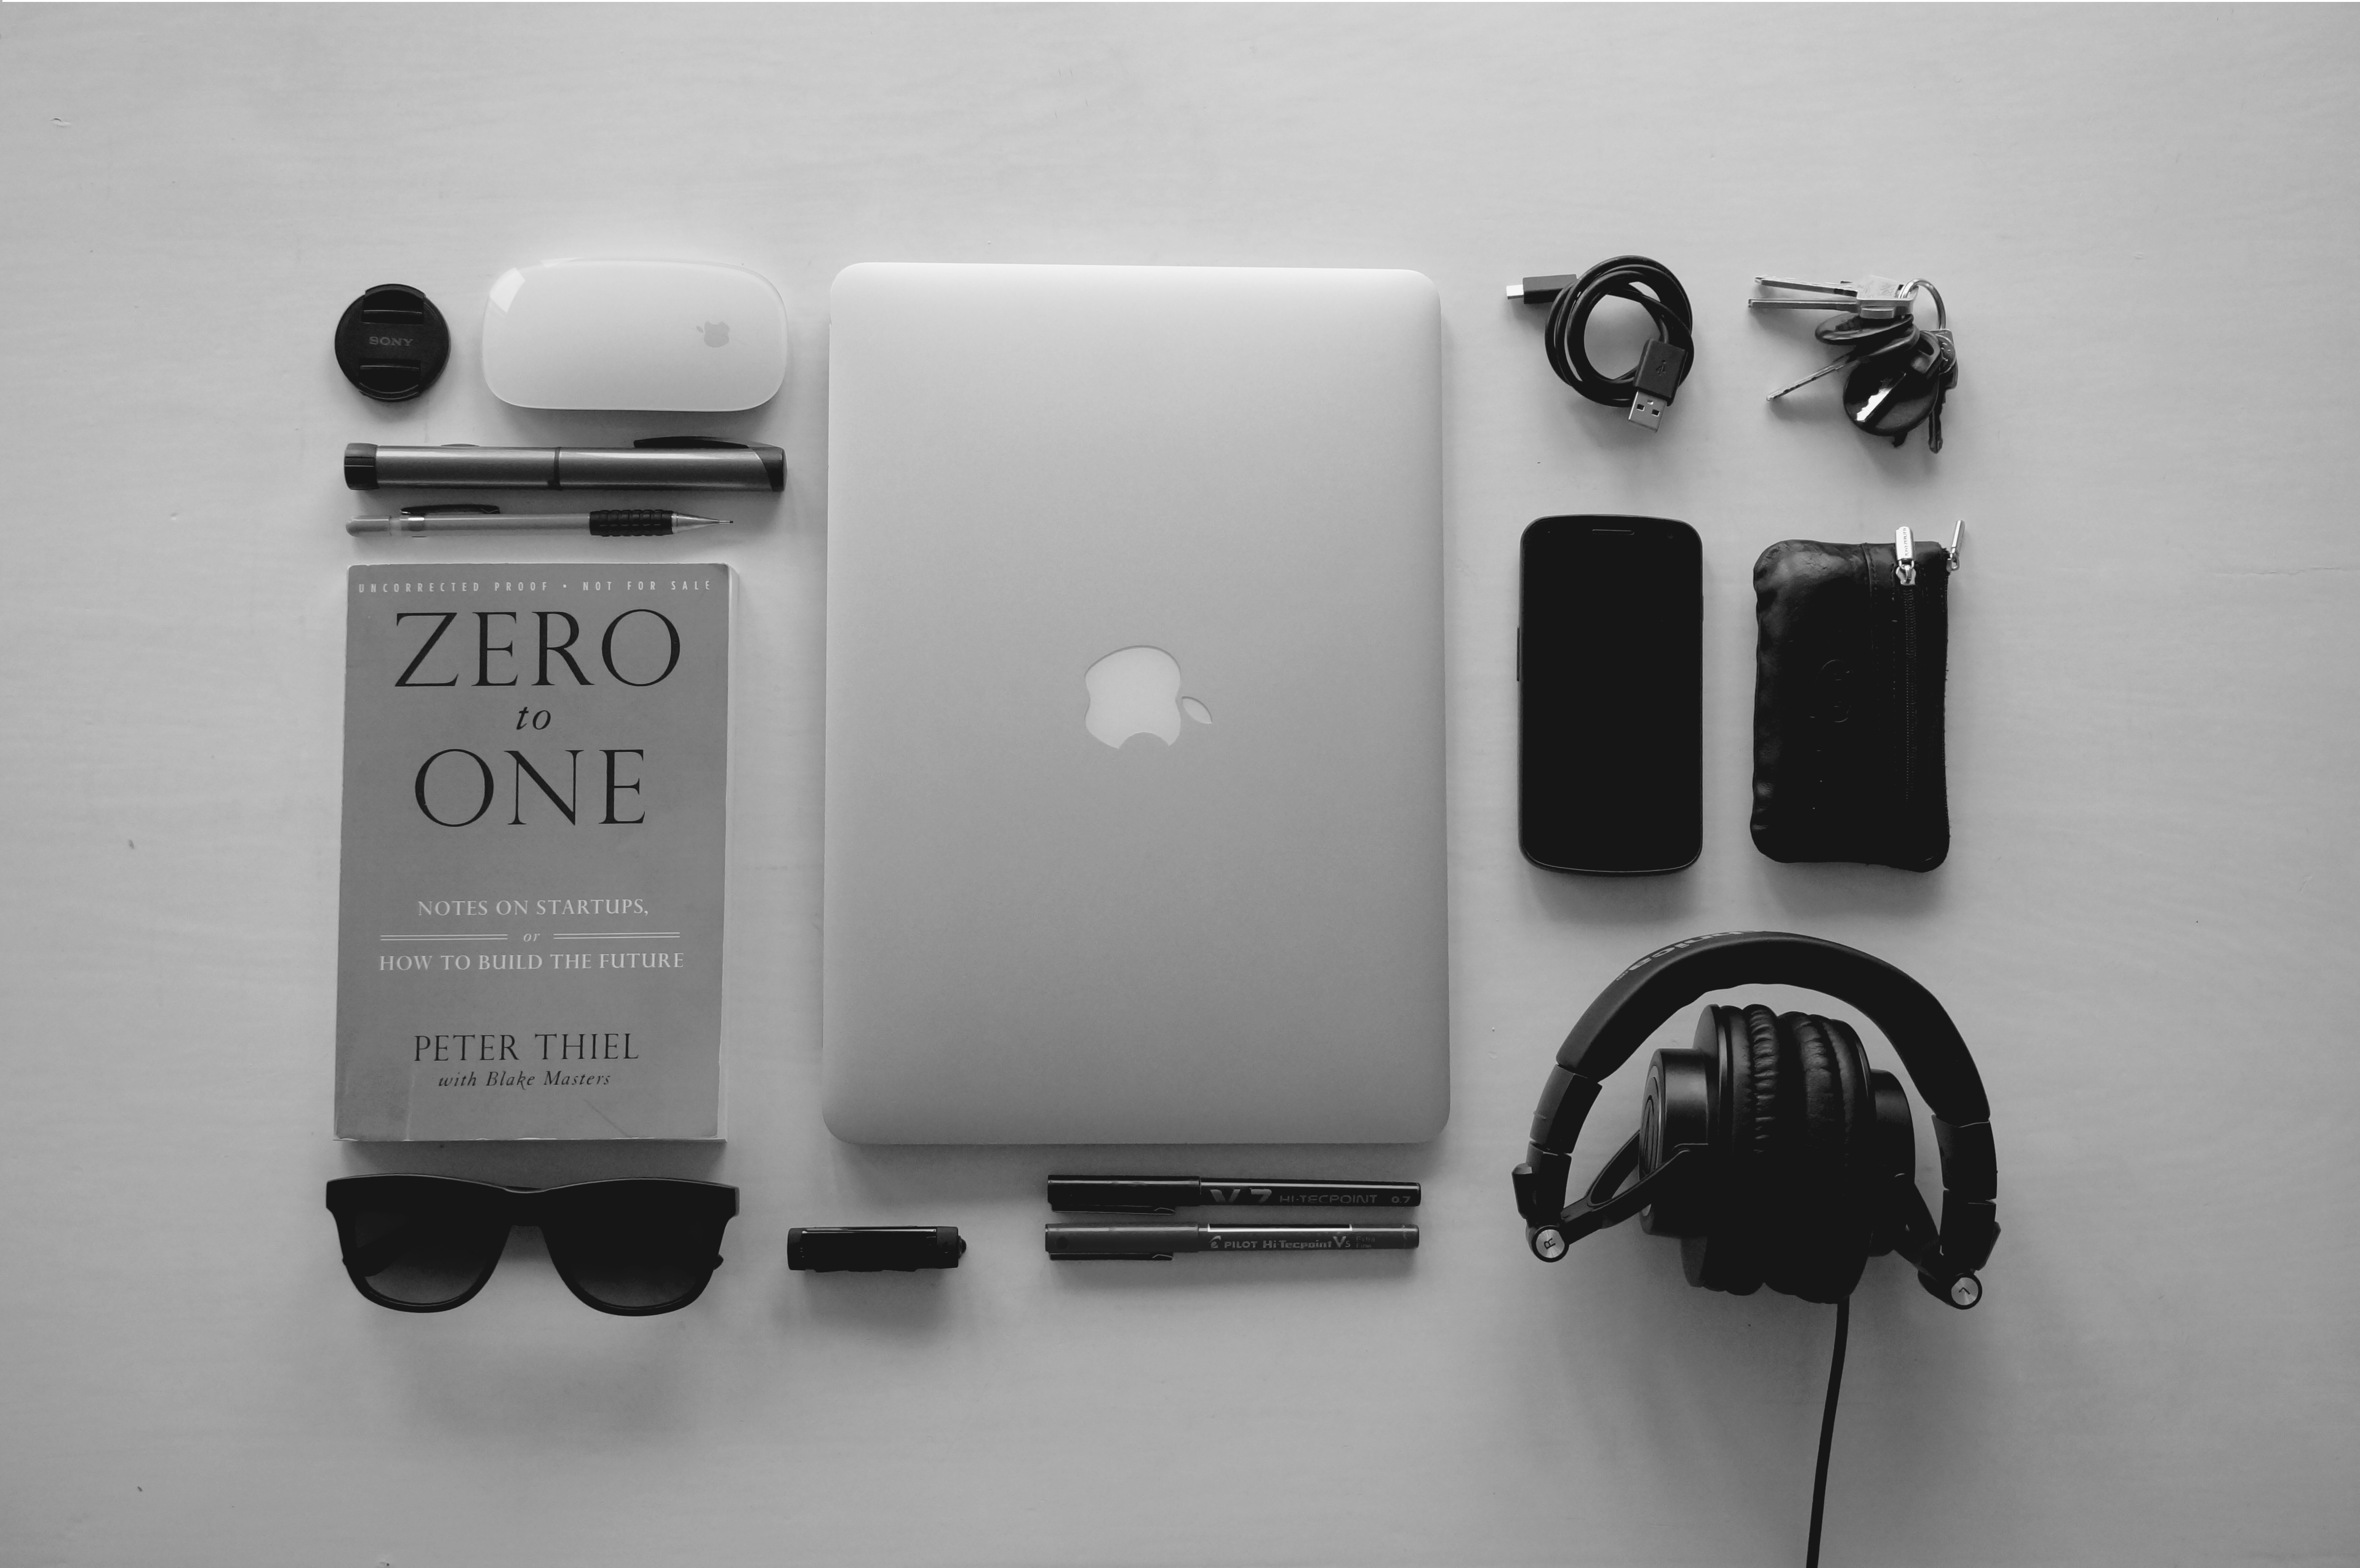 A neatly arranged collection of technology and gadgets including a laptop and Peter Thiel's book Zero to One